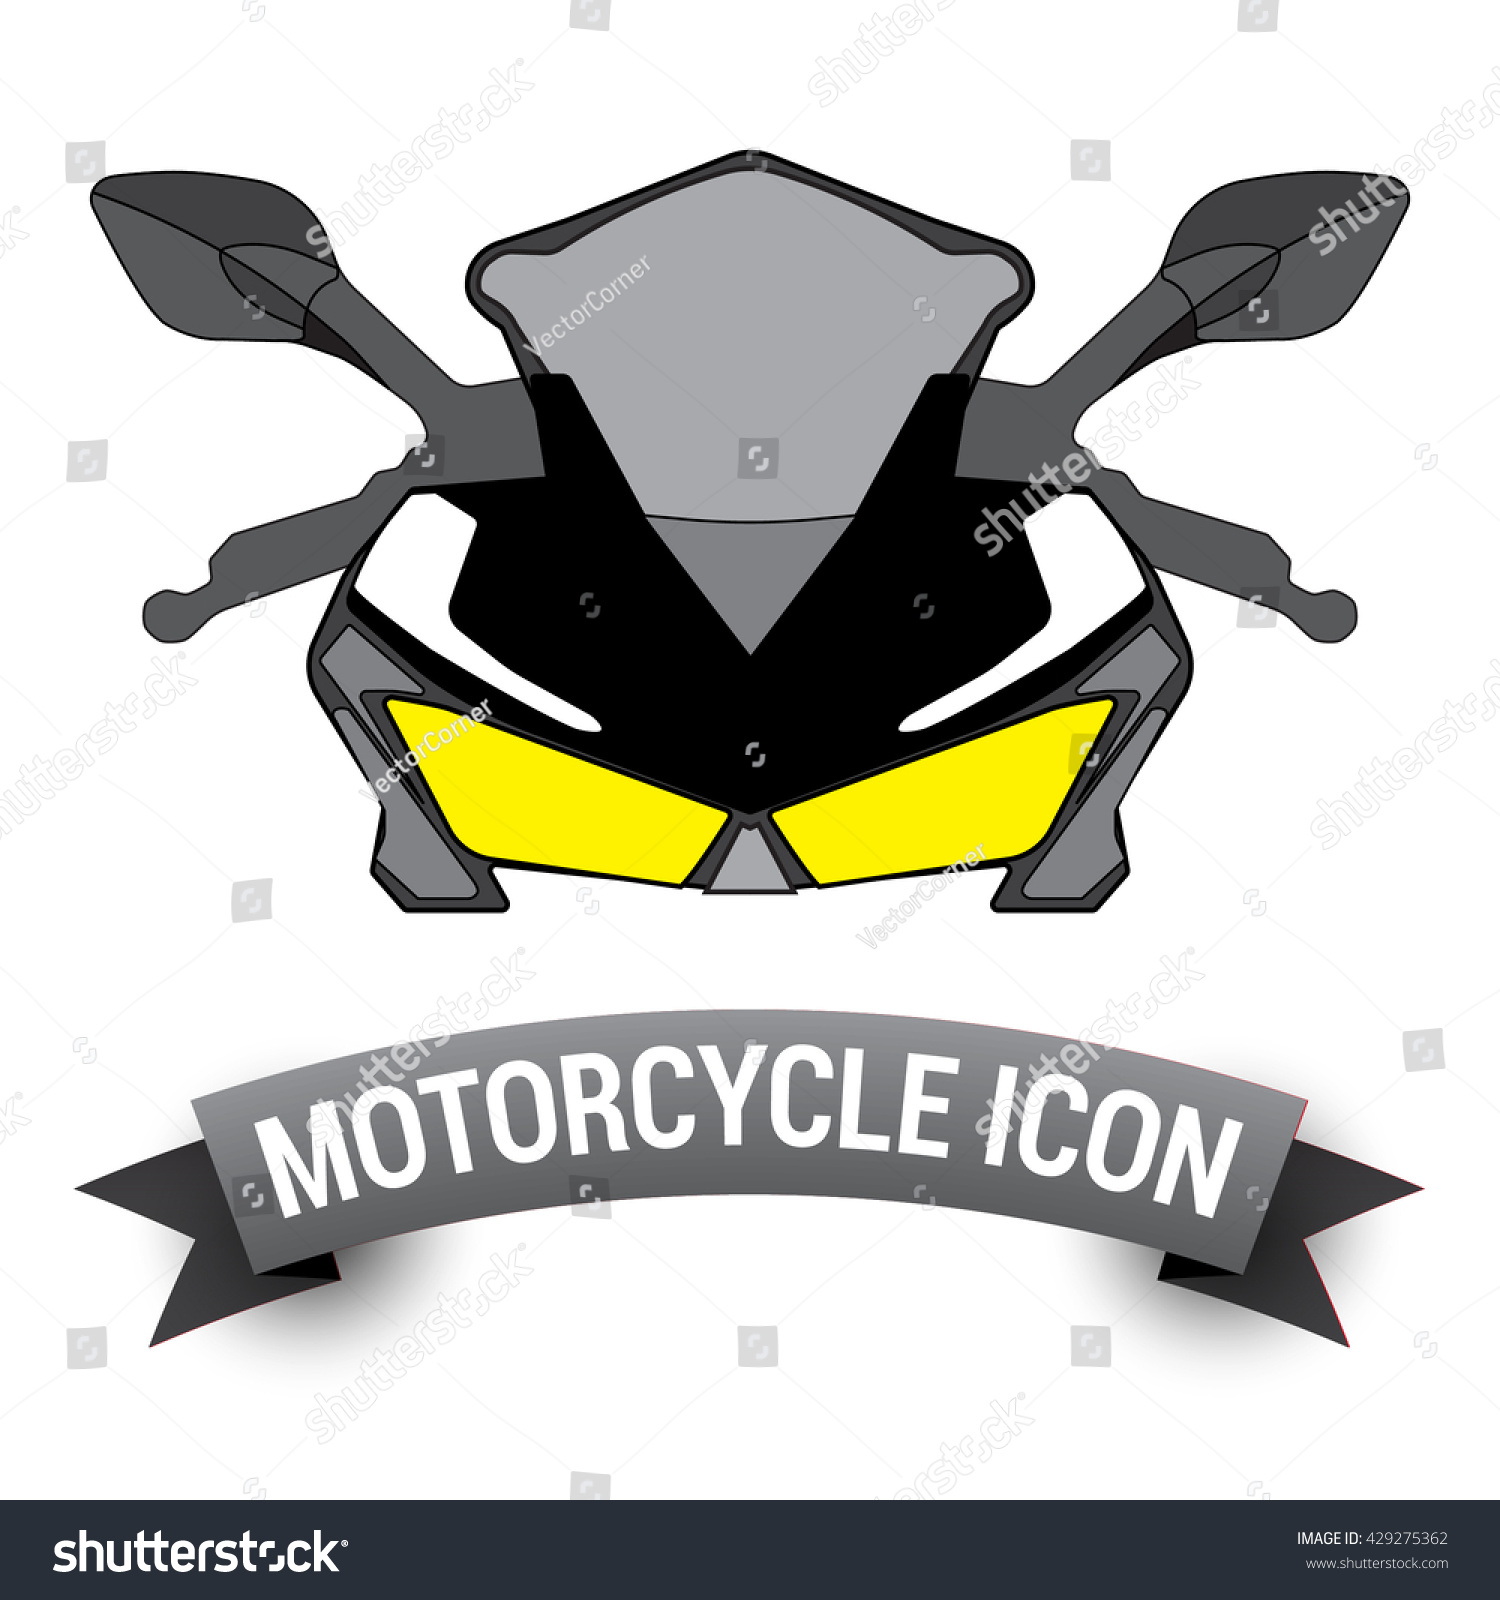 Front View Motor Bike Icon / Motorcycle Badges ...